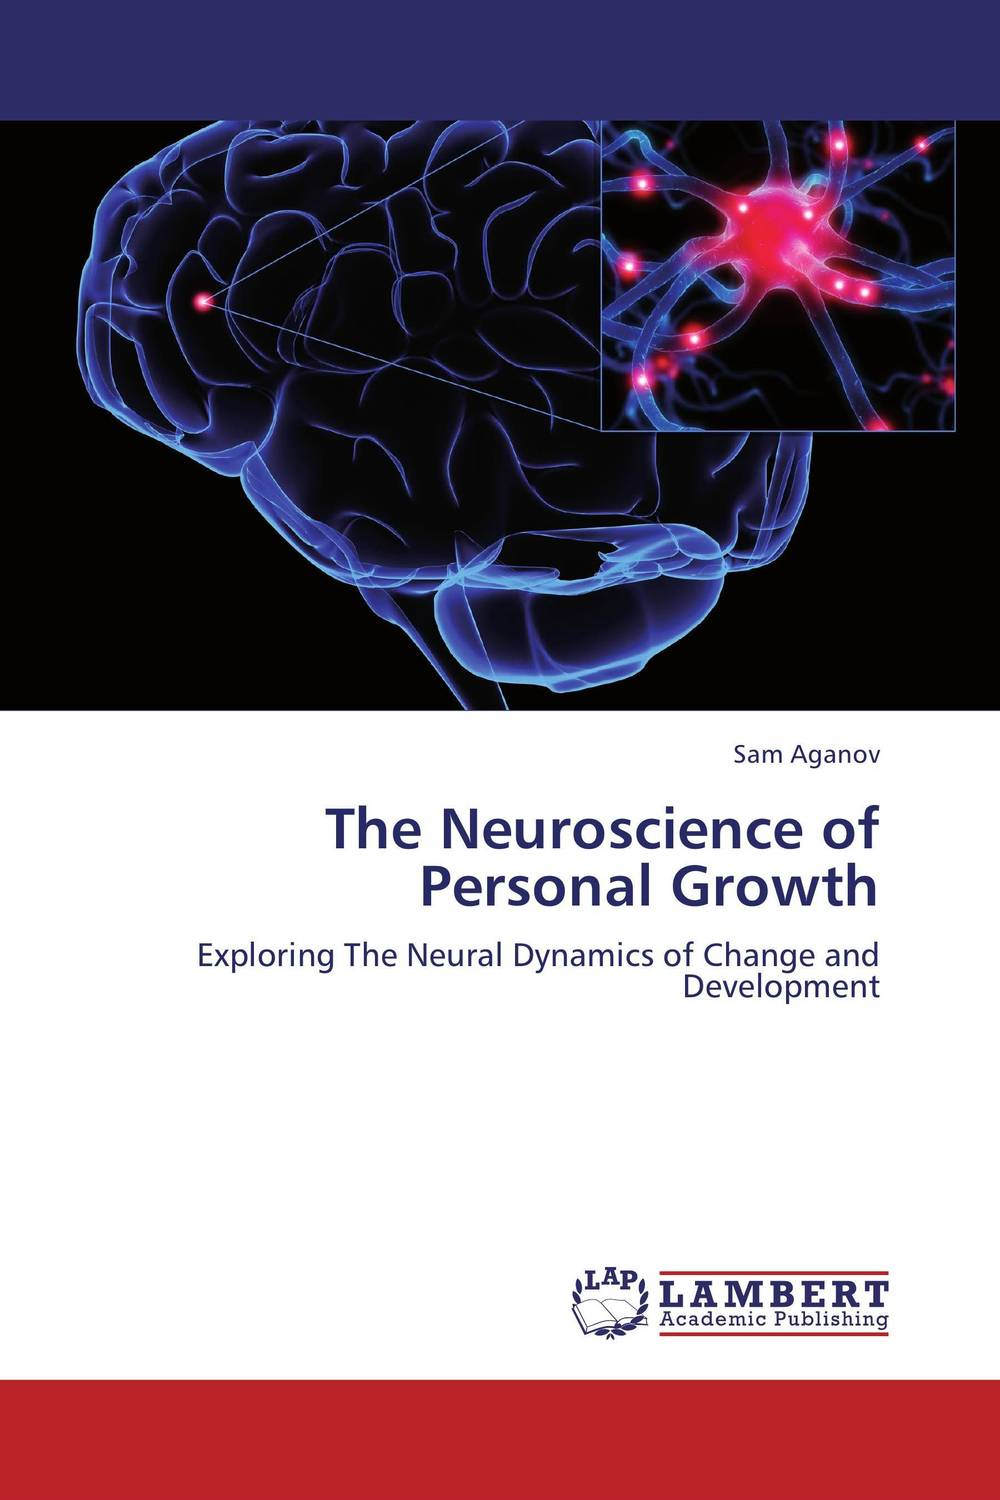 The Neuroscience of Personal Growth schmitt neuroscience resea symp summ an anth o f work session repo from resea prog bull